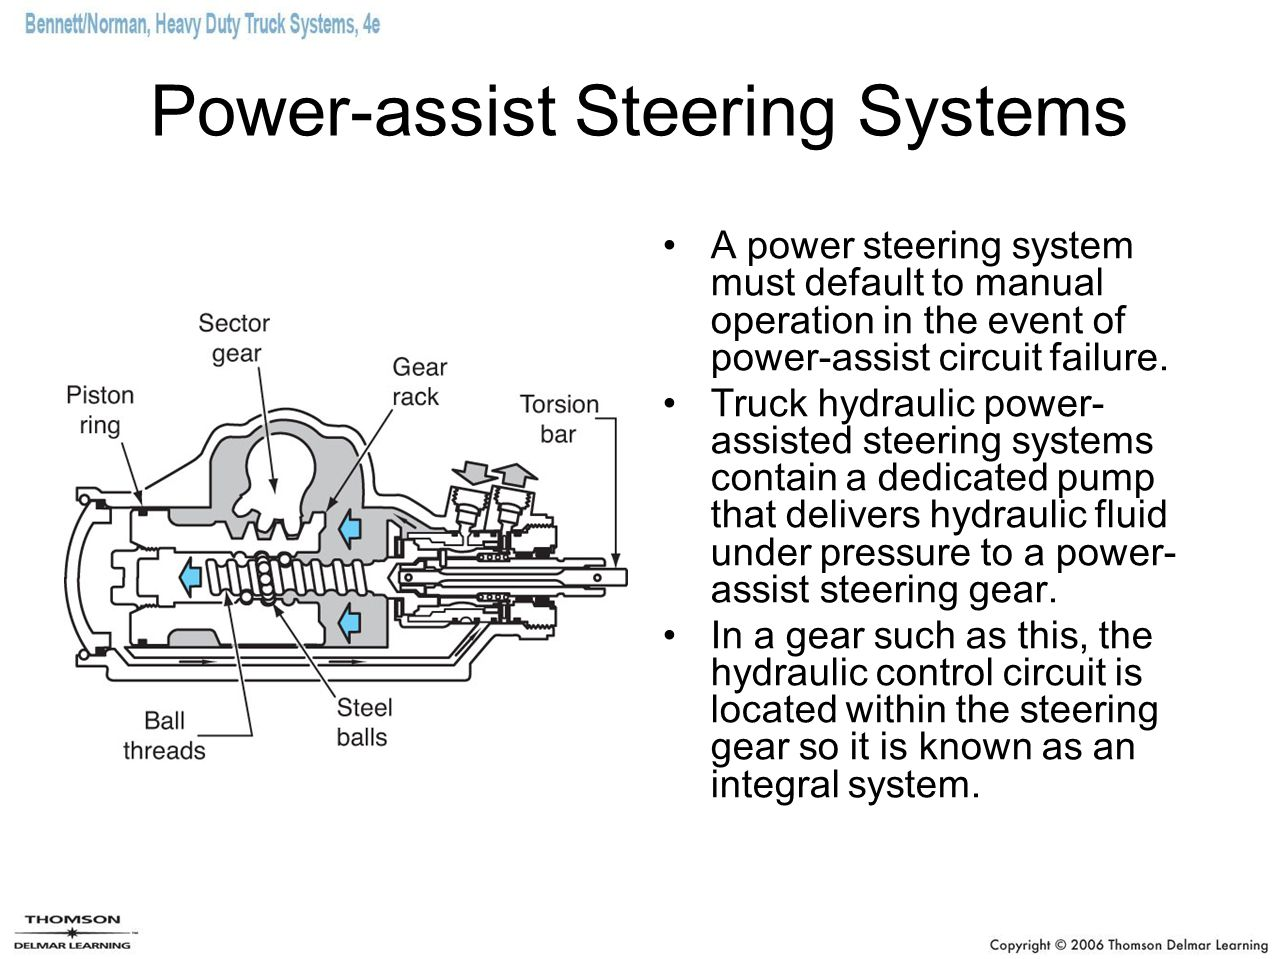 Power-assist Steering Systems